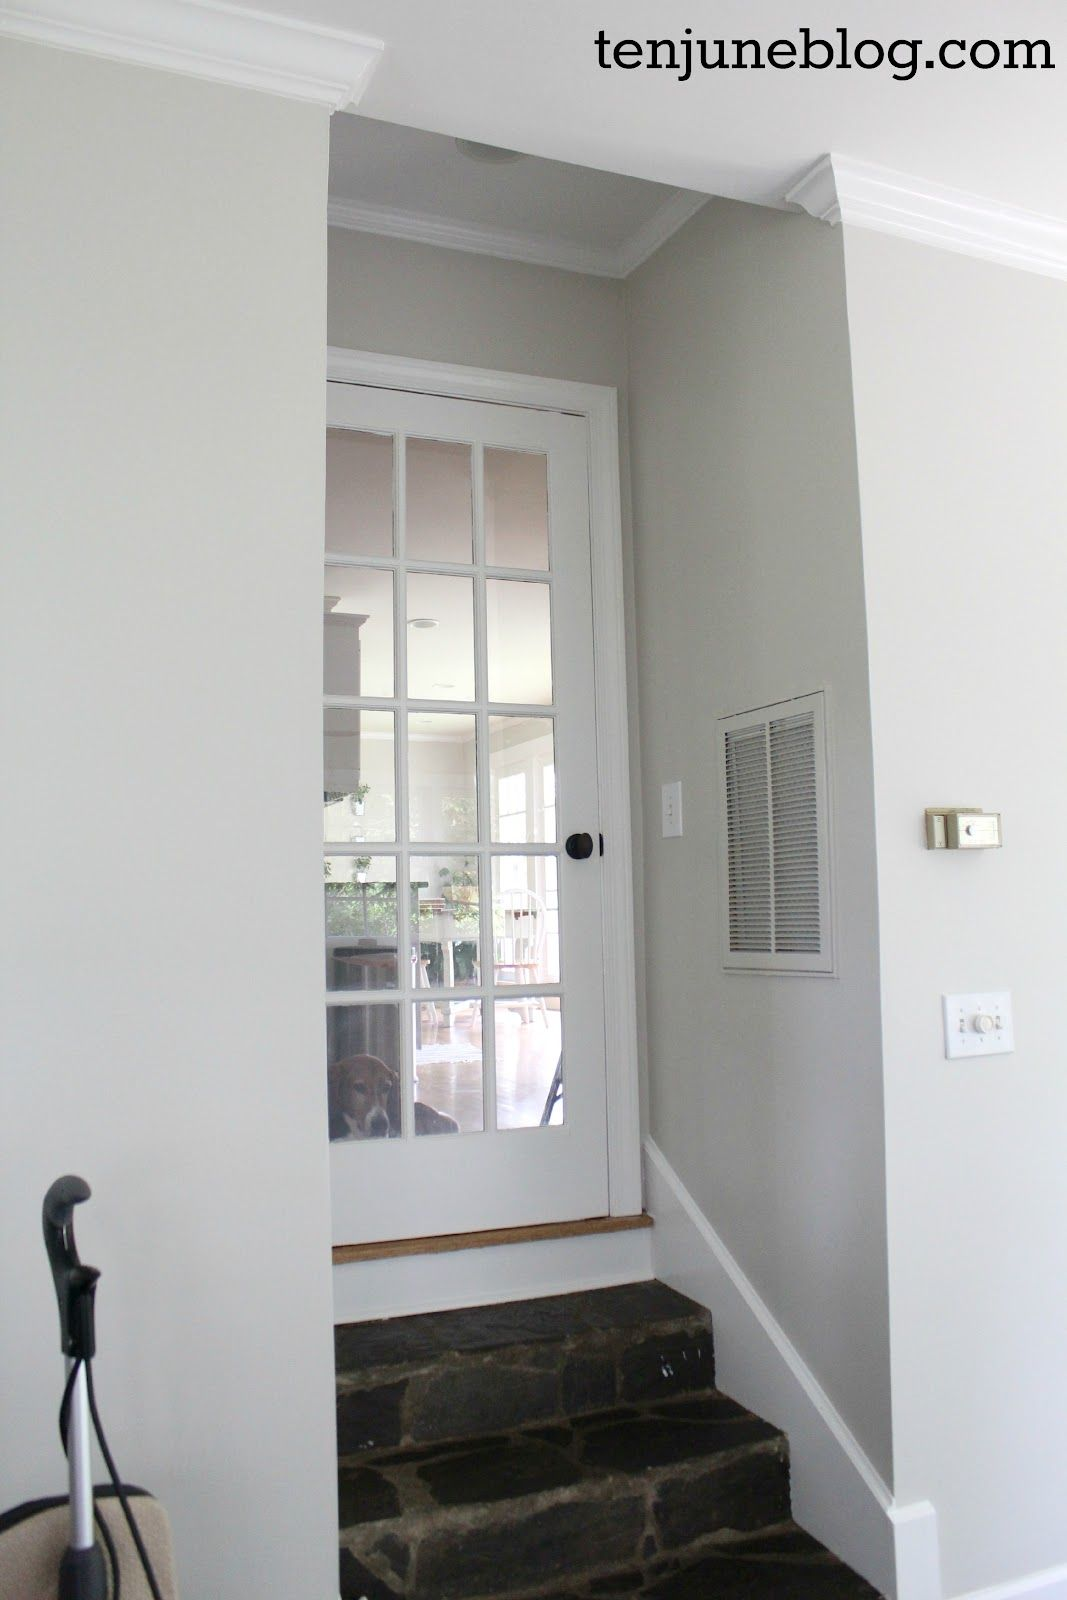 behr mineral paint color in eggshell finish main interior on behr paint colors interior id=40515